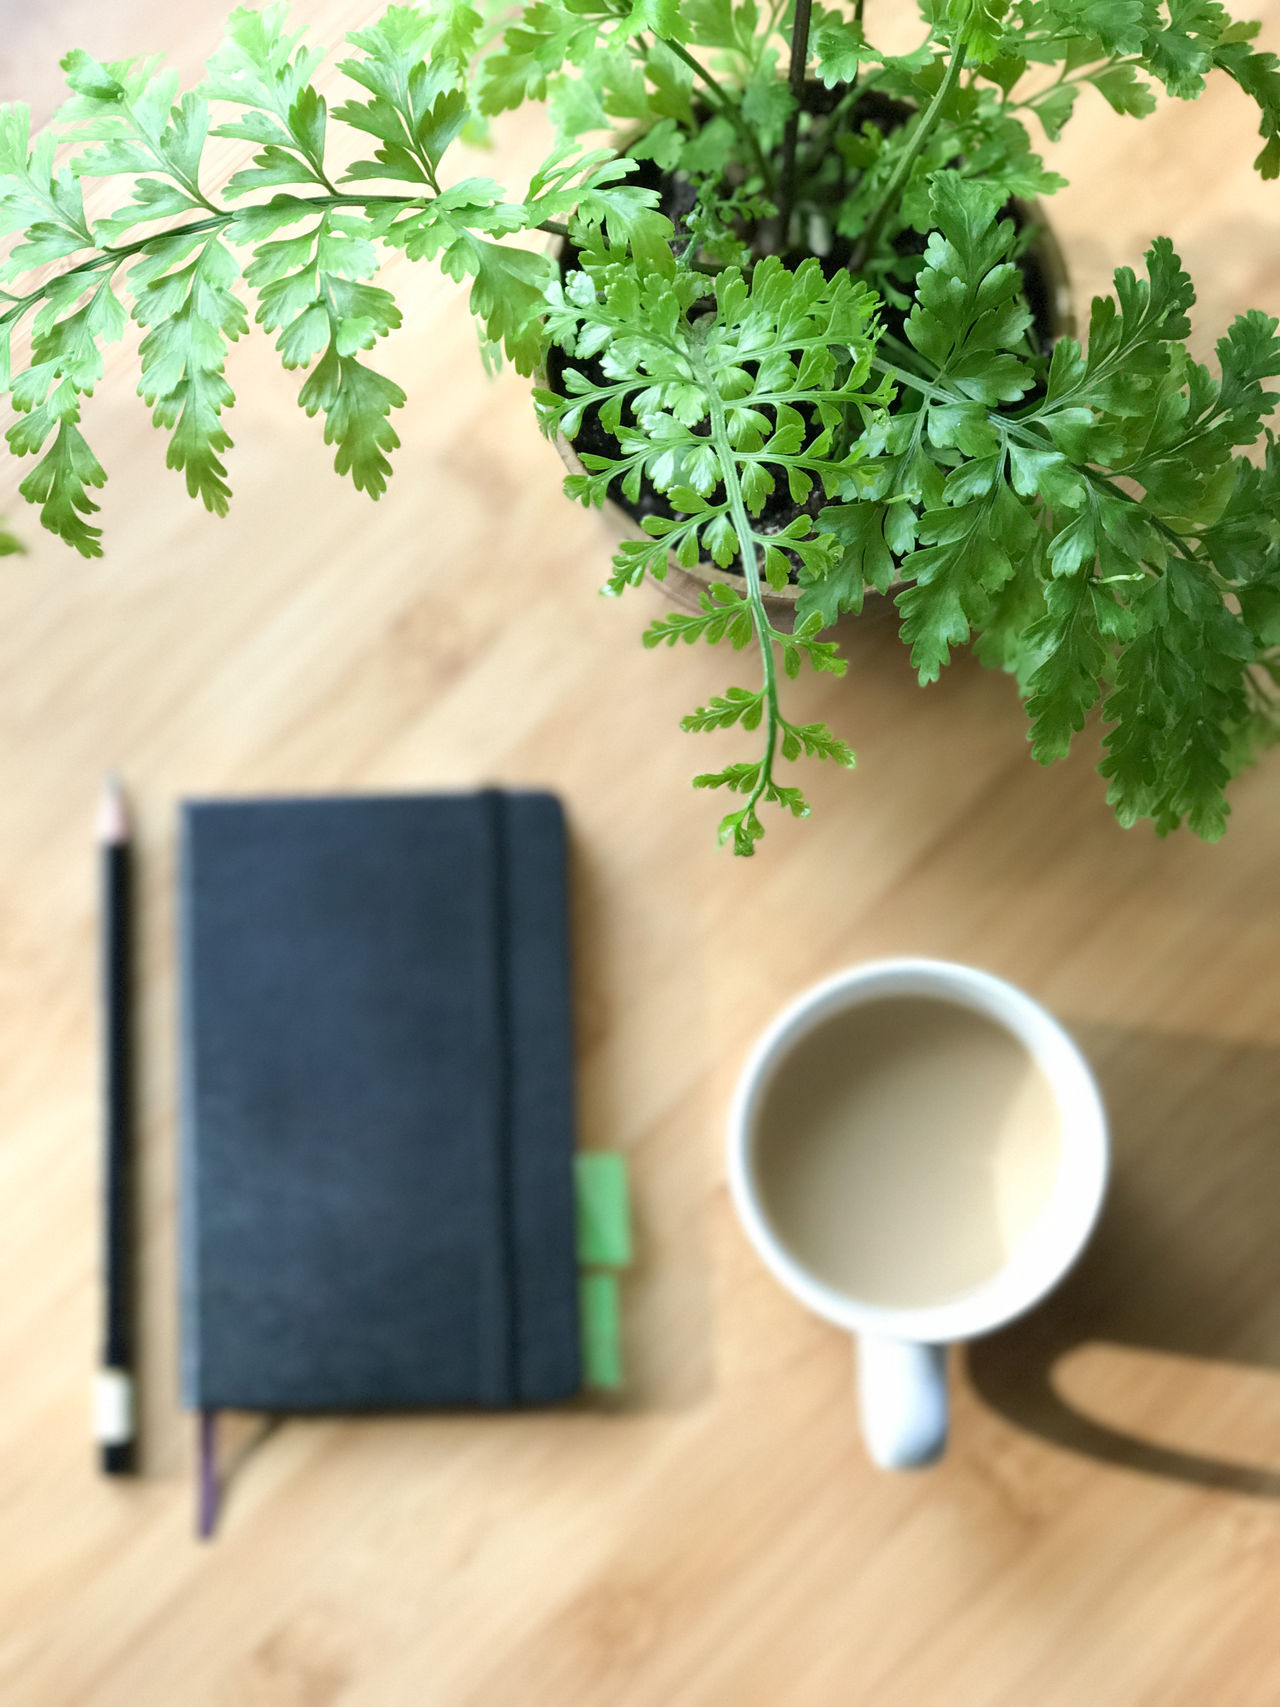 Coffee - Drink Coffee Cup Cup Day Drink Early Morning Light Fern High Angle View Indoors  Journal Mug No People Notebook At Work Plant Refreshment Table Top Down View Wood - Material Writing Instrument